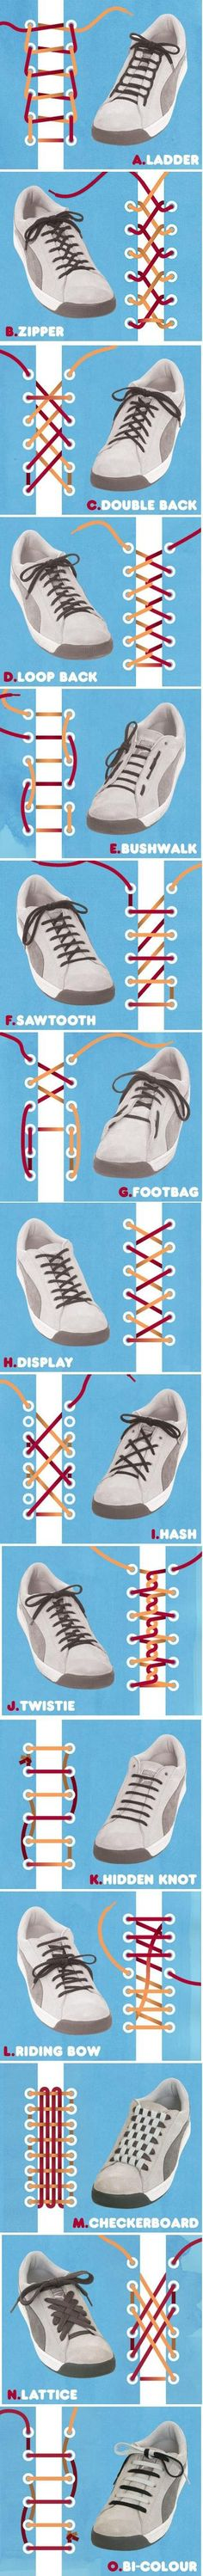 Crazy list of shoe lace tying methods